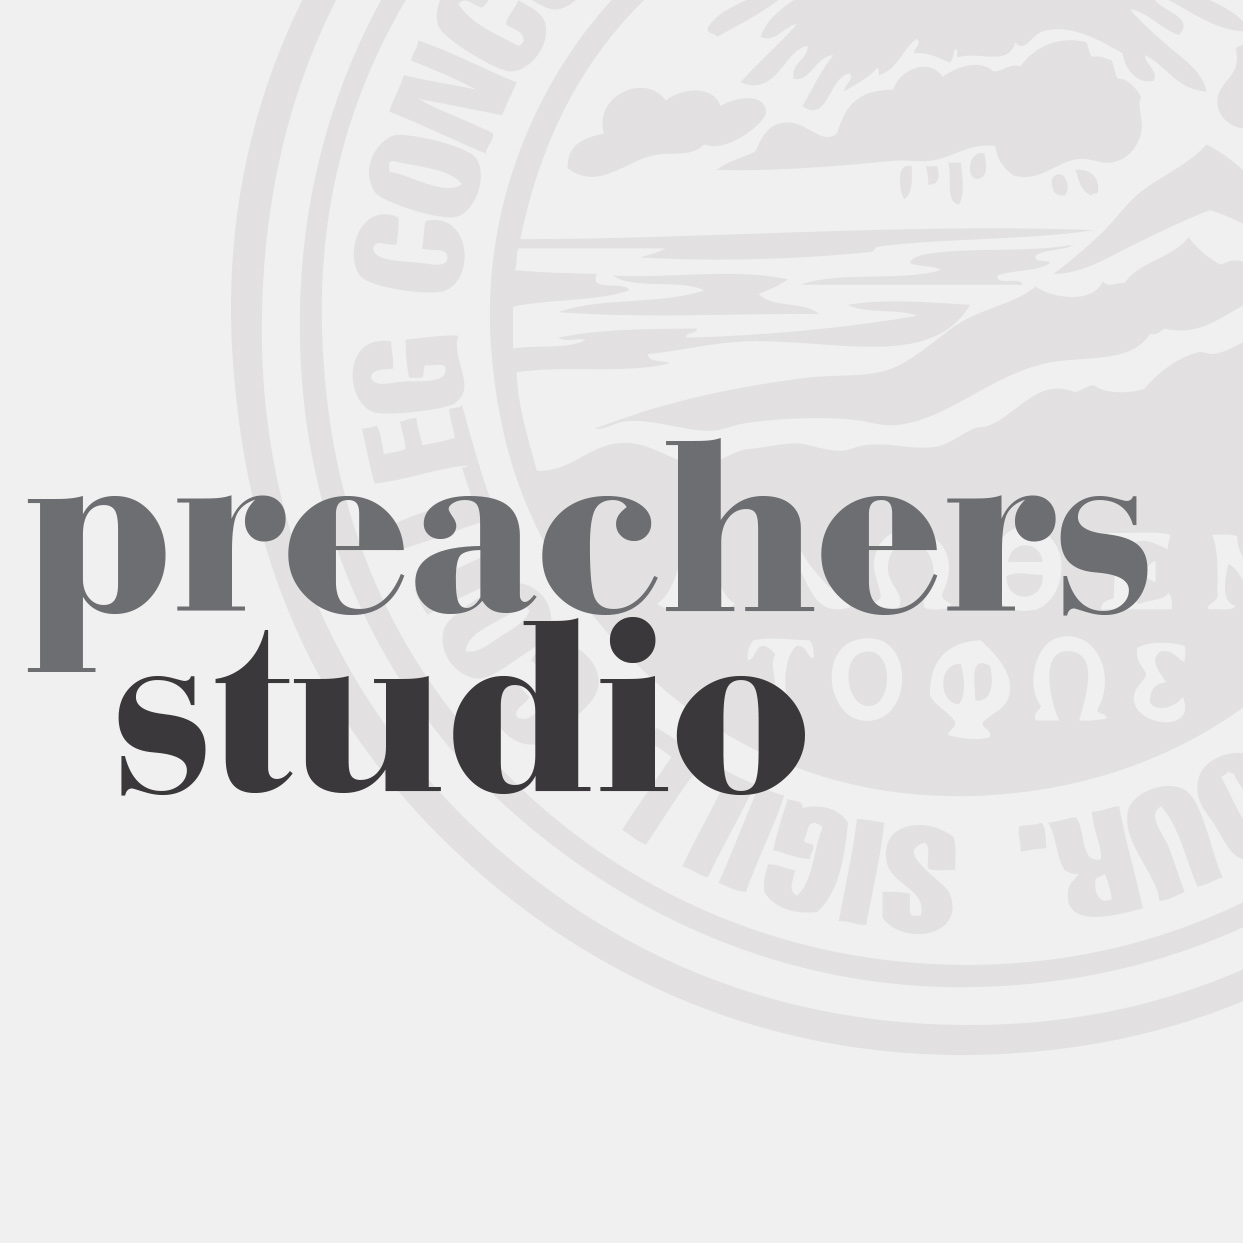 Preachers Studio: Bob Sundquist